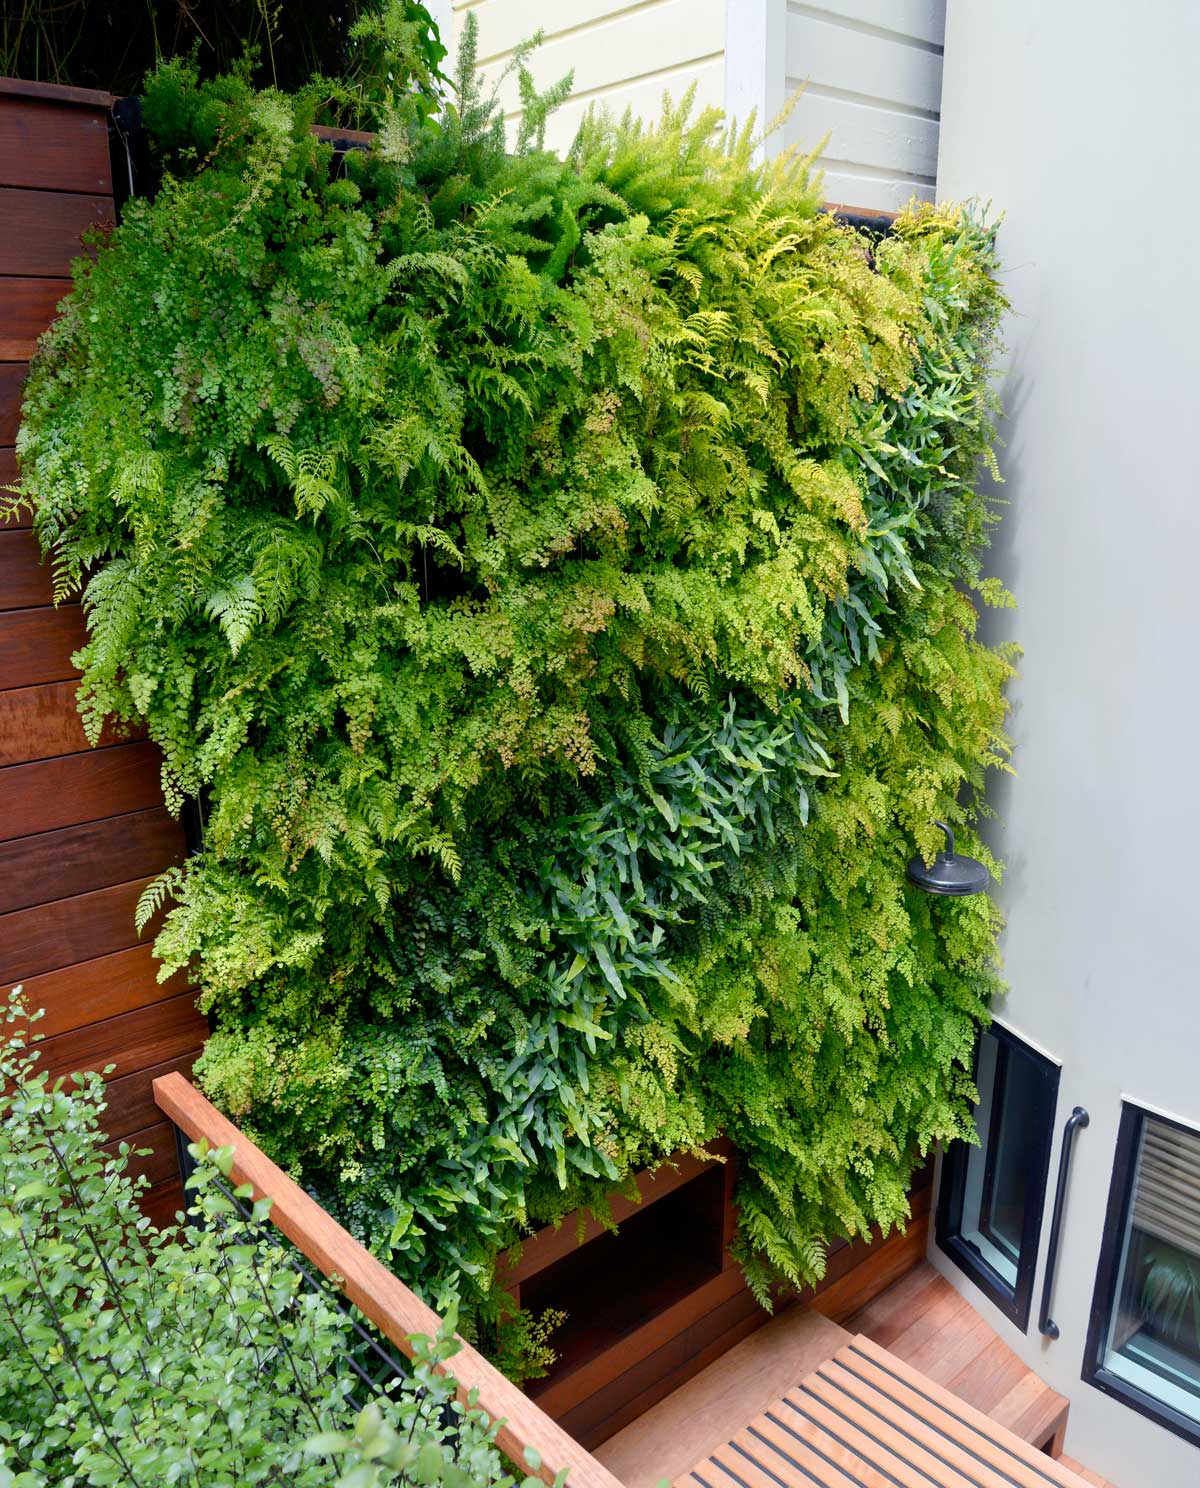 Florafelt Pro System Vertical Garden by Tim O'Shea for a San Francisco Residence.